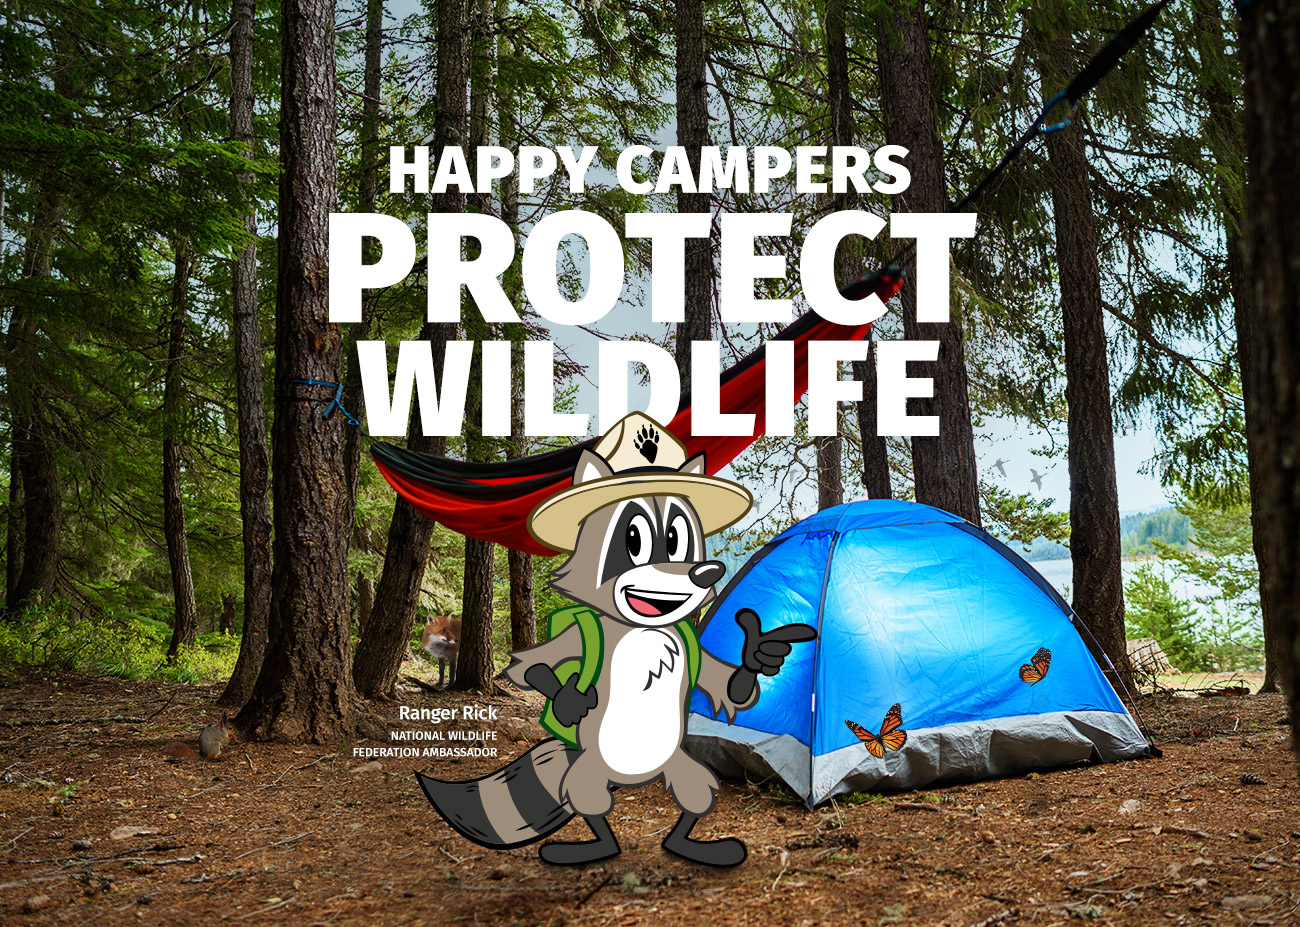 Happy Campers Protect Wildlife!